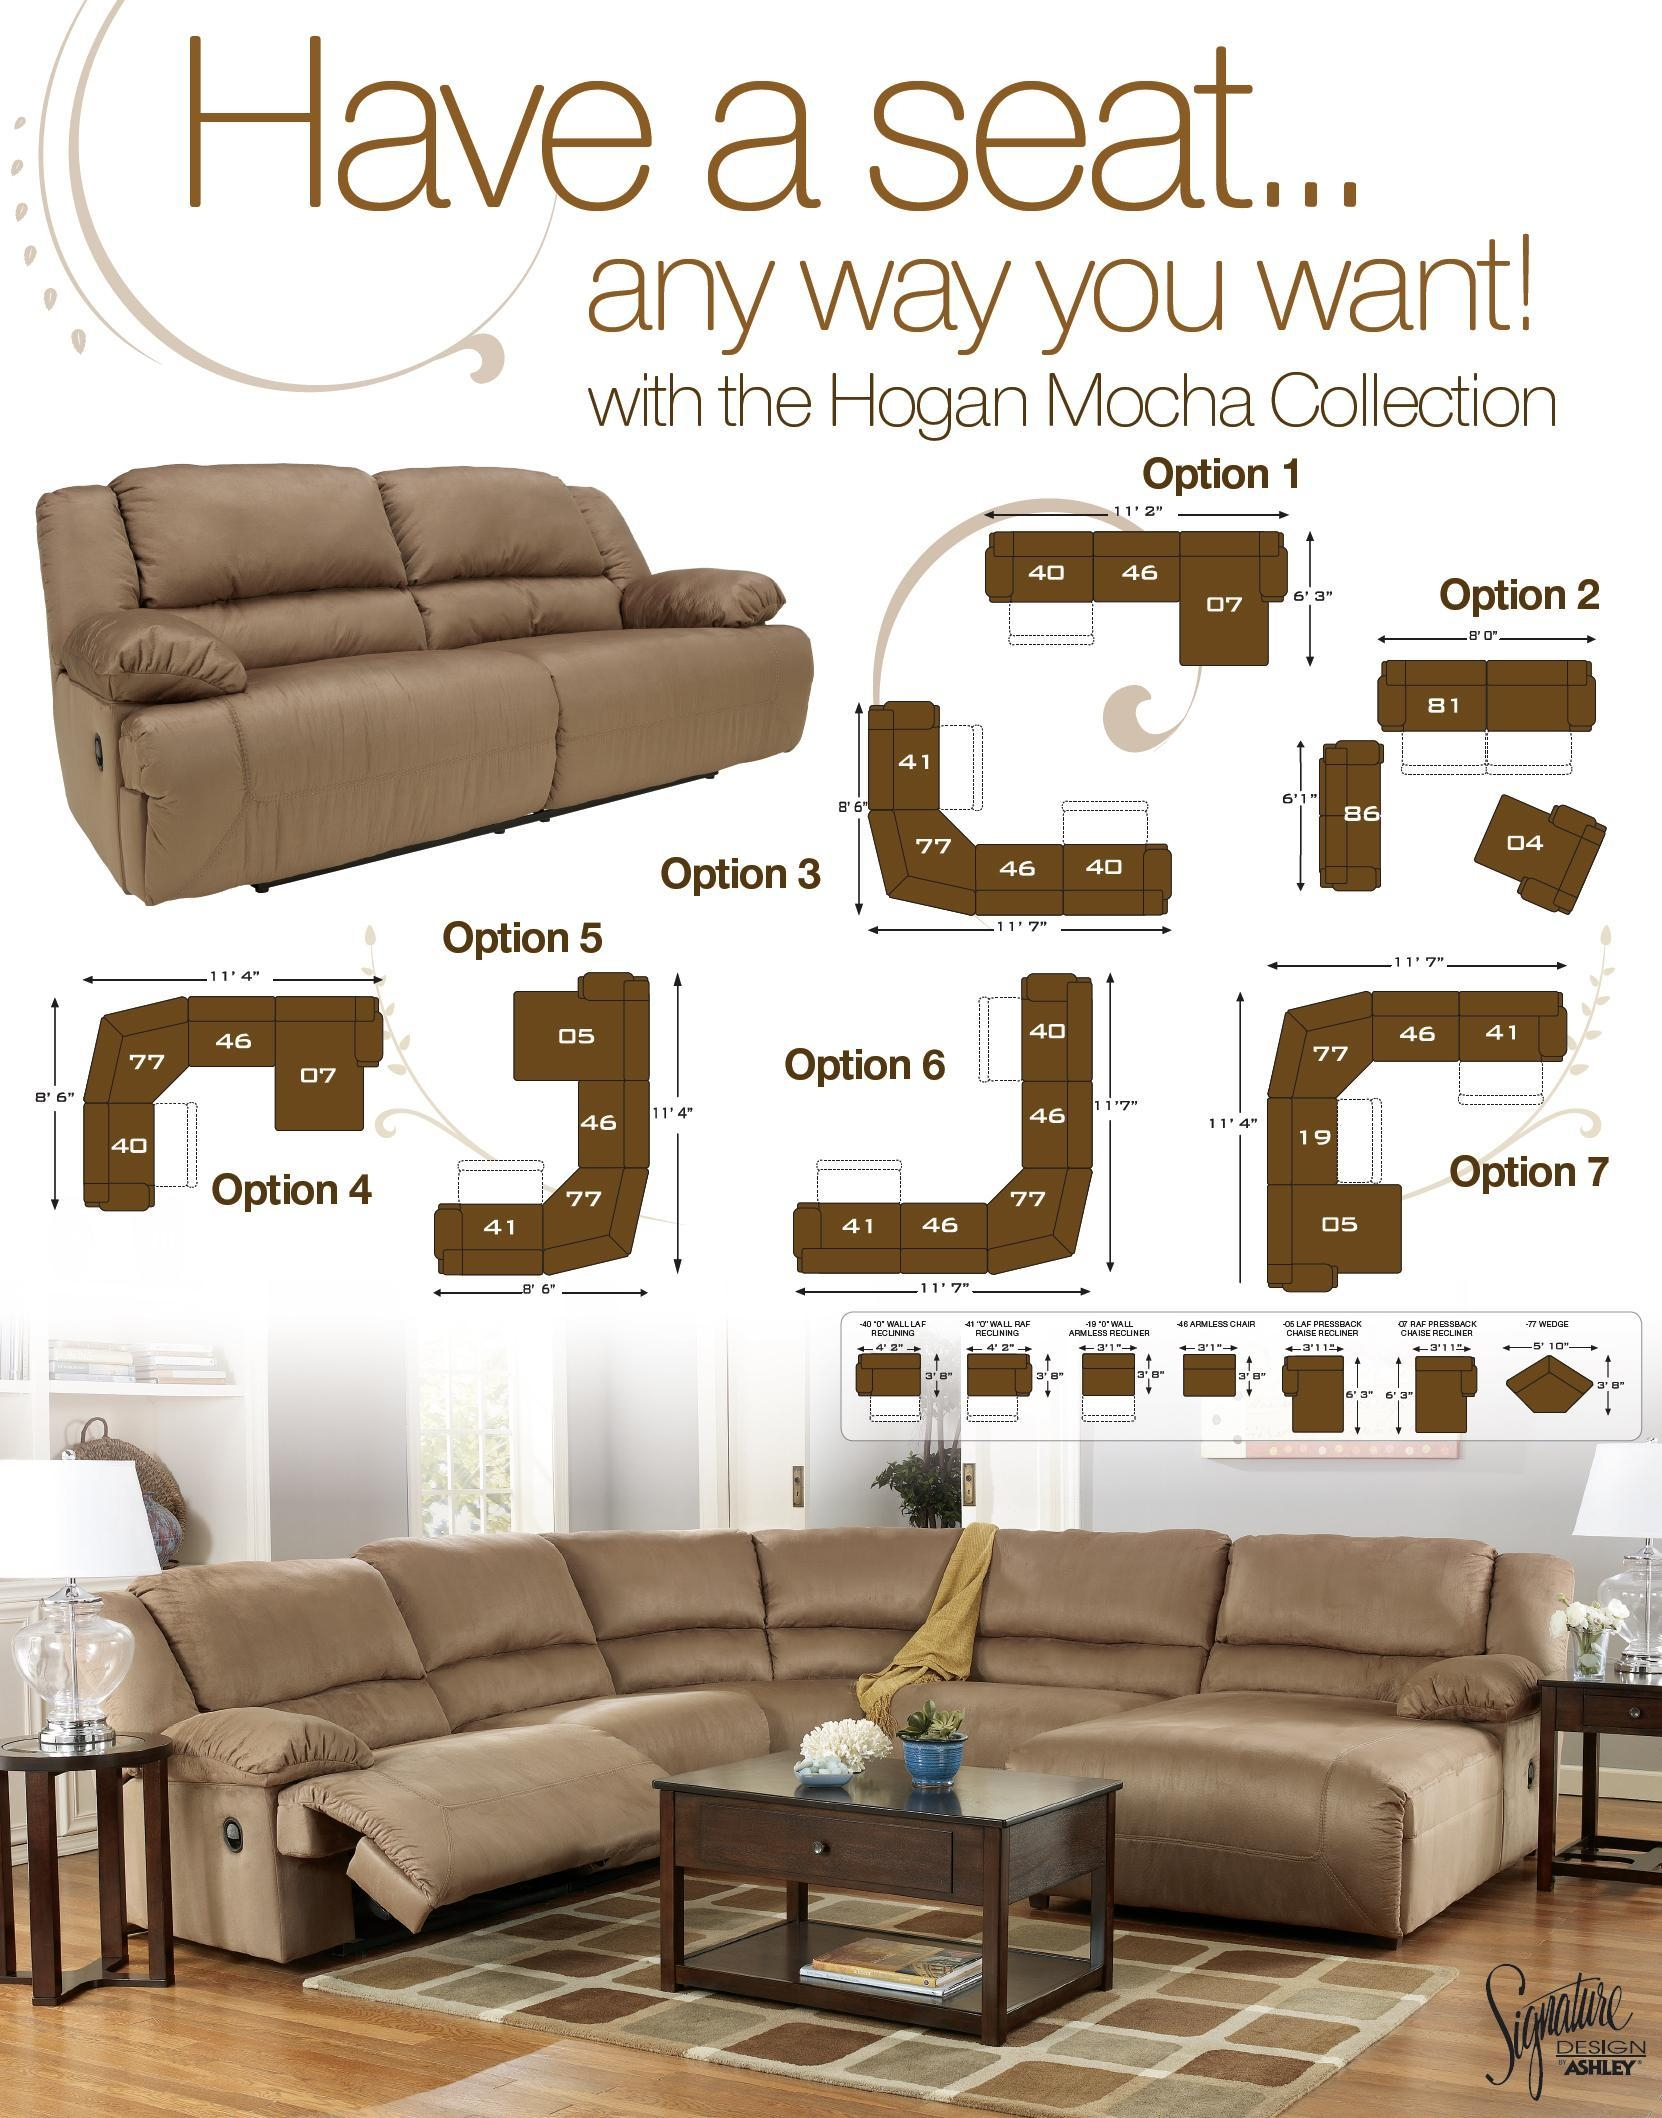 6 Piece Motion Sectional With Left Chaise And Consolesignature For 6 Piece Sectional Sofas Couches (Image 2 of 20)